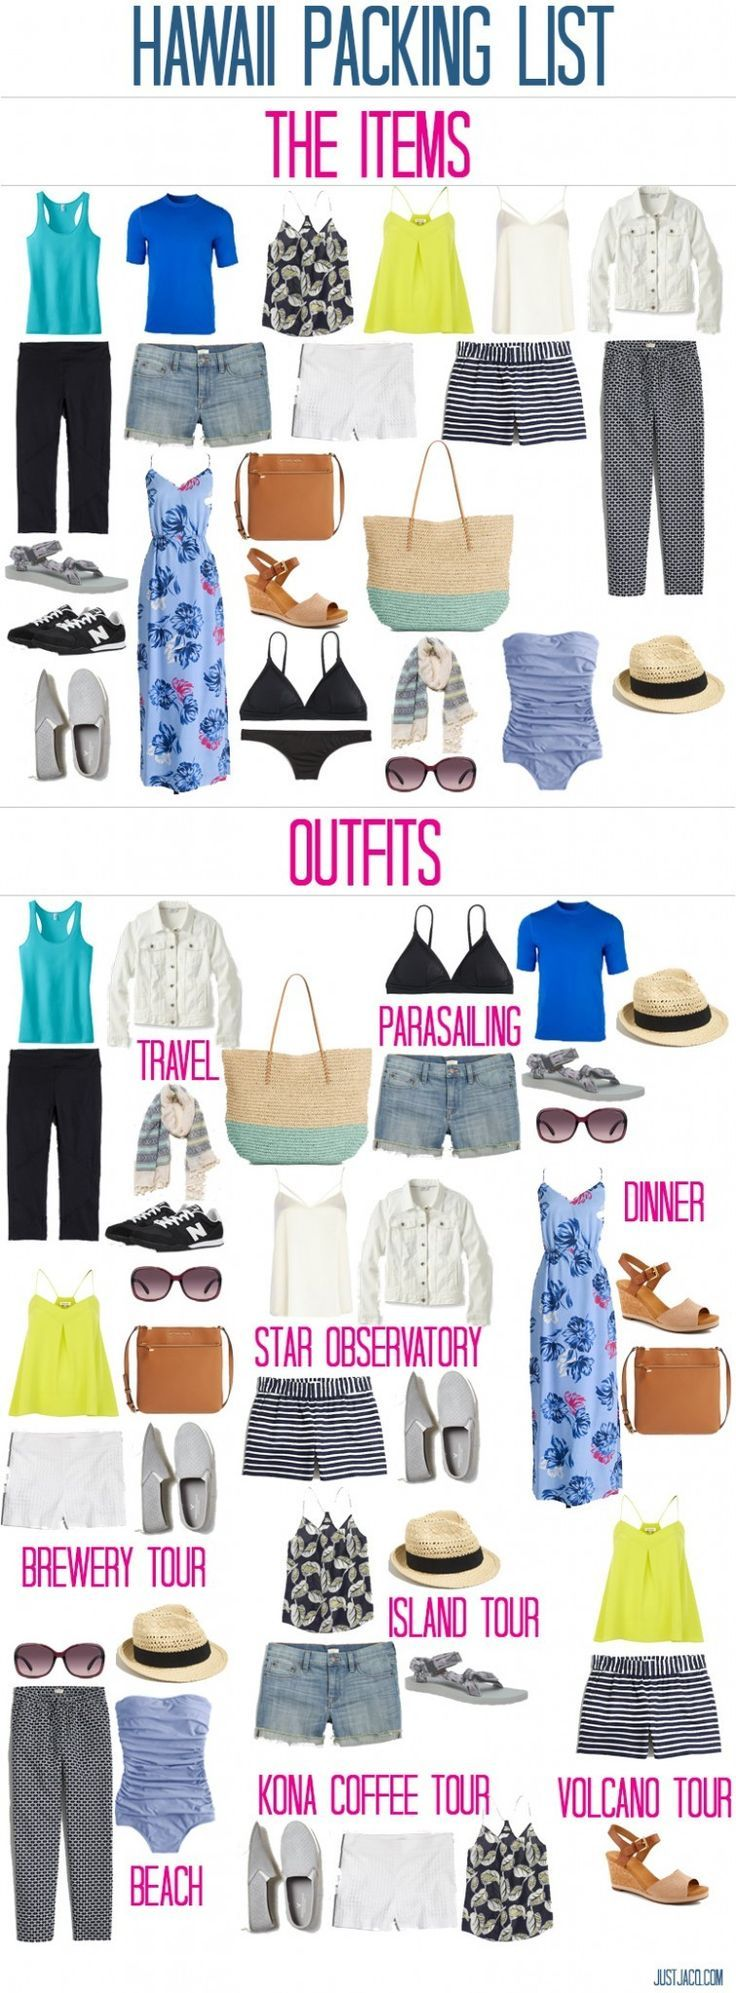 7 Day trip to Hawaii in a carry on suitcase! How to pack a capsule wardrobe in a carry on suitcase. Check out this super simple guide to packing and creating outfits for traveling! What to wear to a tropical island. @justjacq www.justjacq.com http://www.j